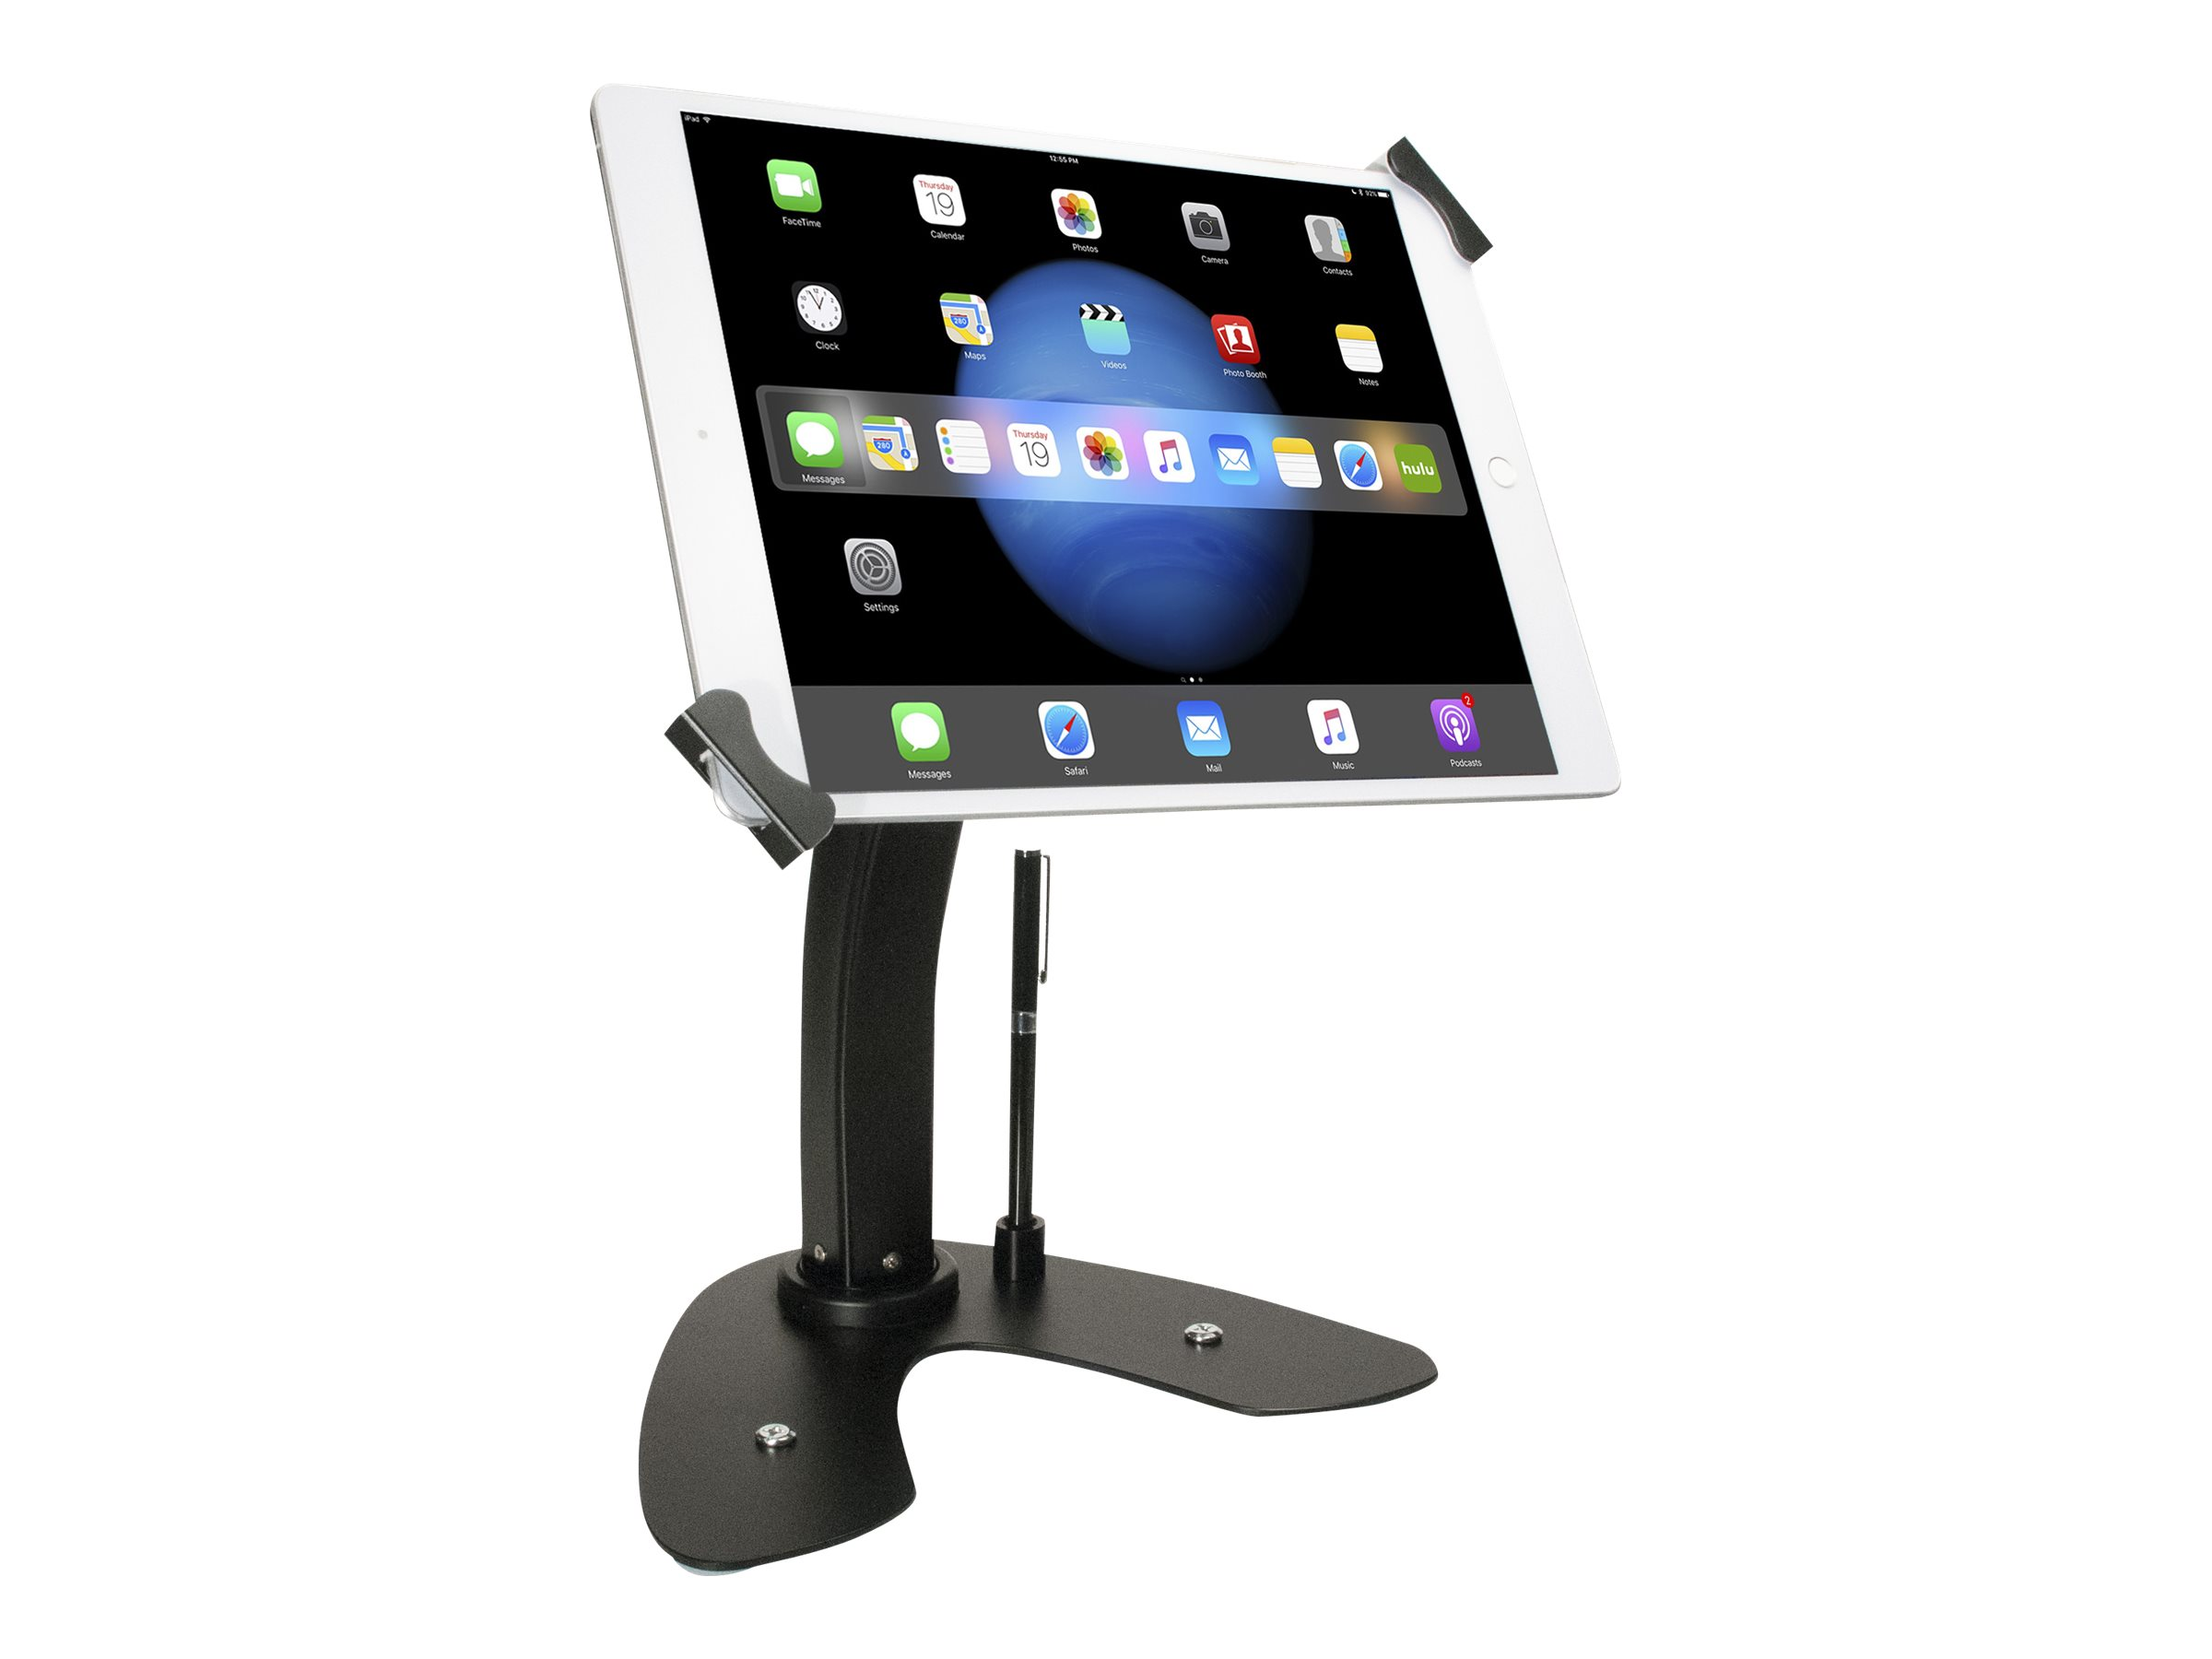 CTA Digital Universal Dual Security Kiosk with Locking Holder and Anti-Theft Cable - stand